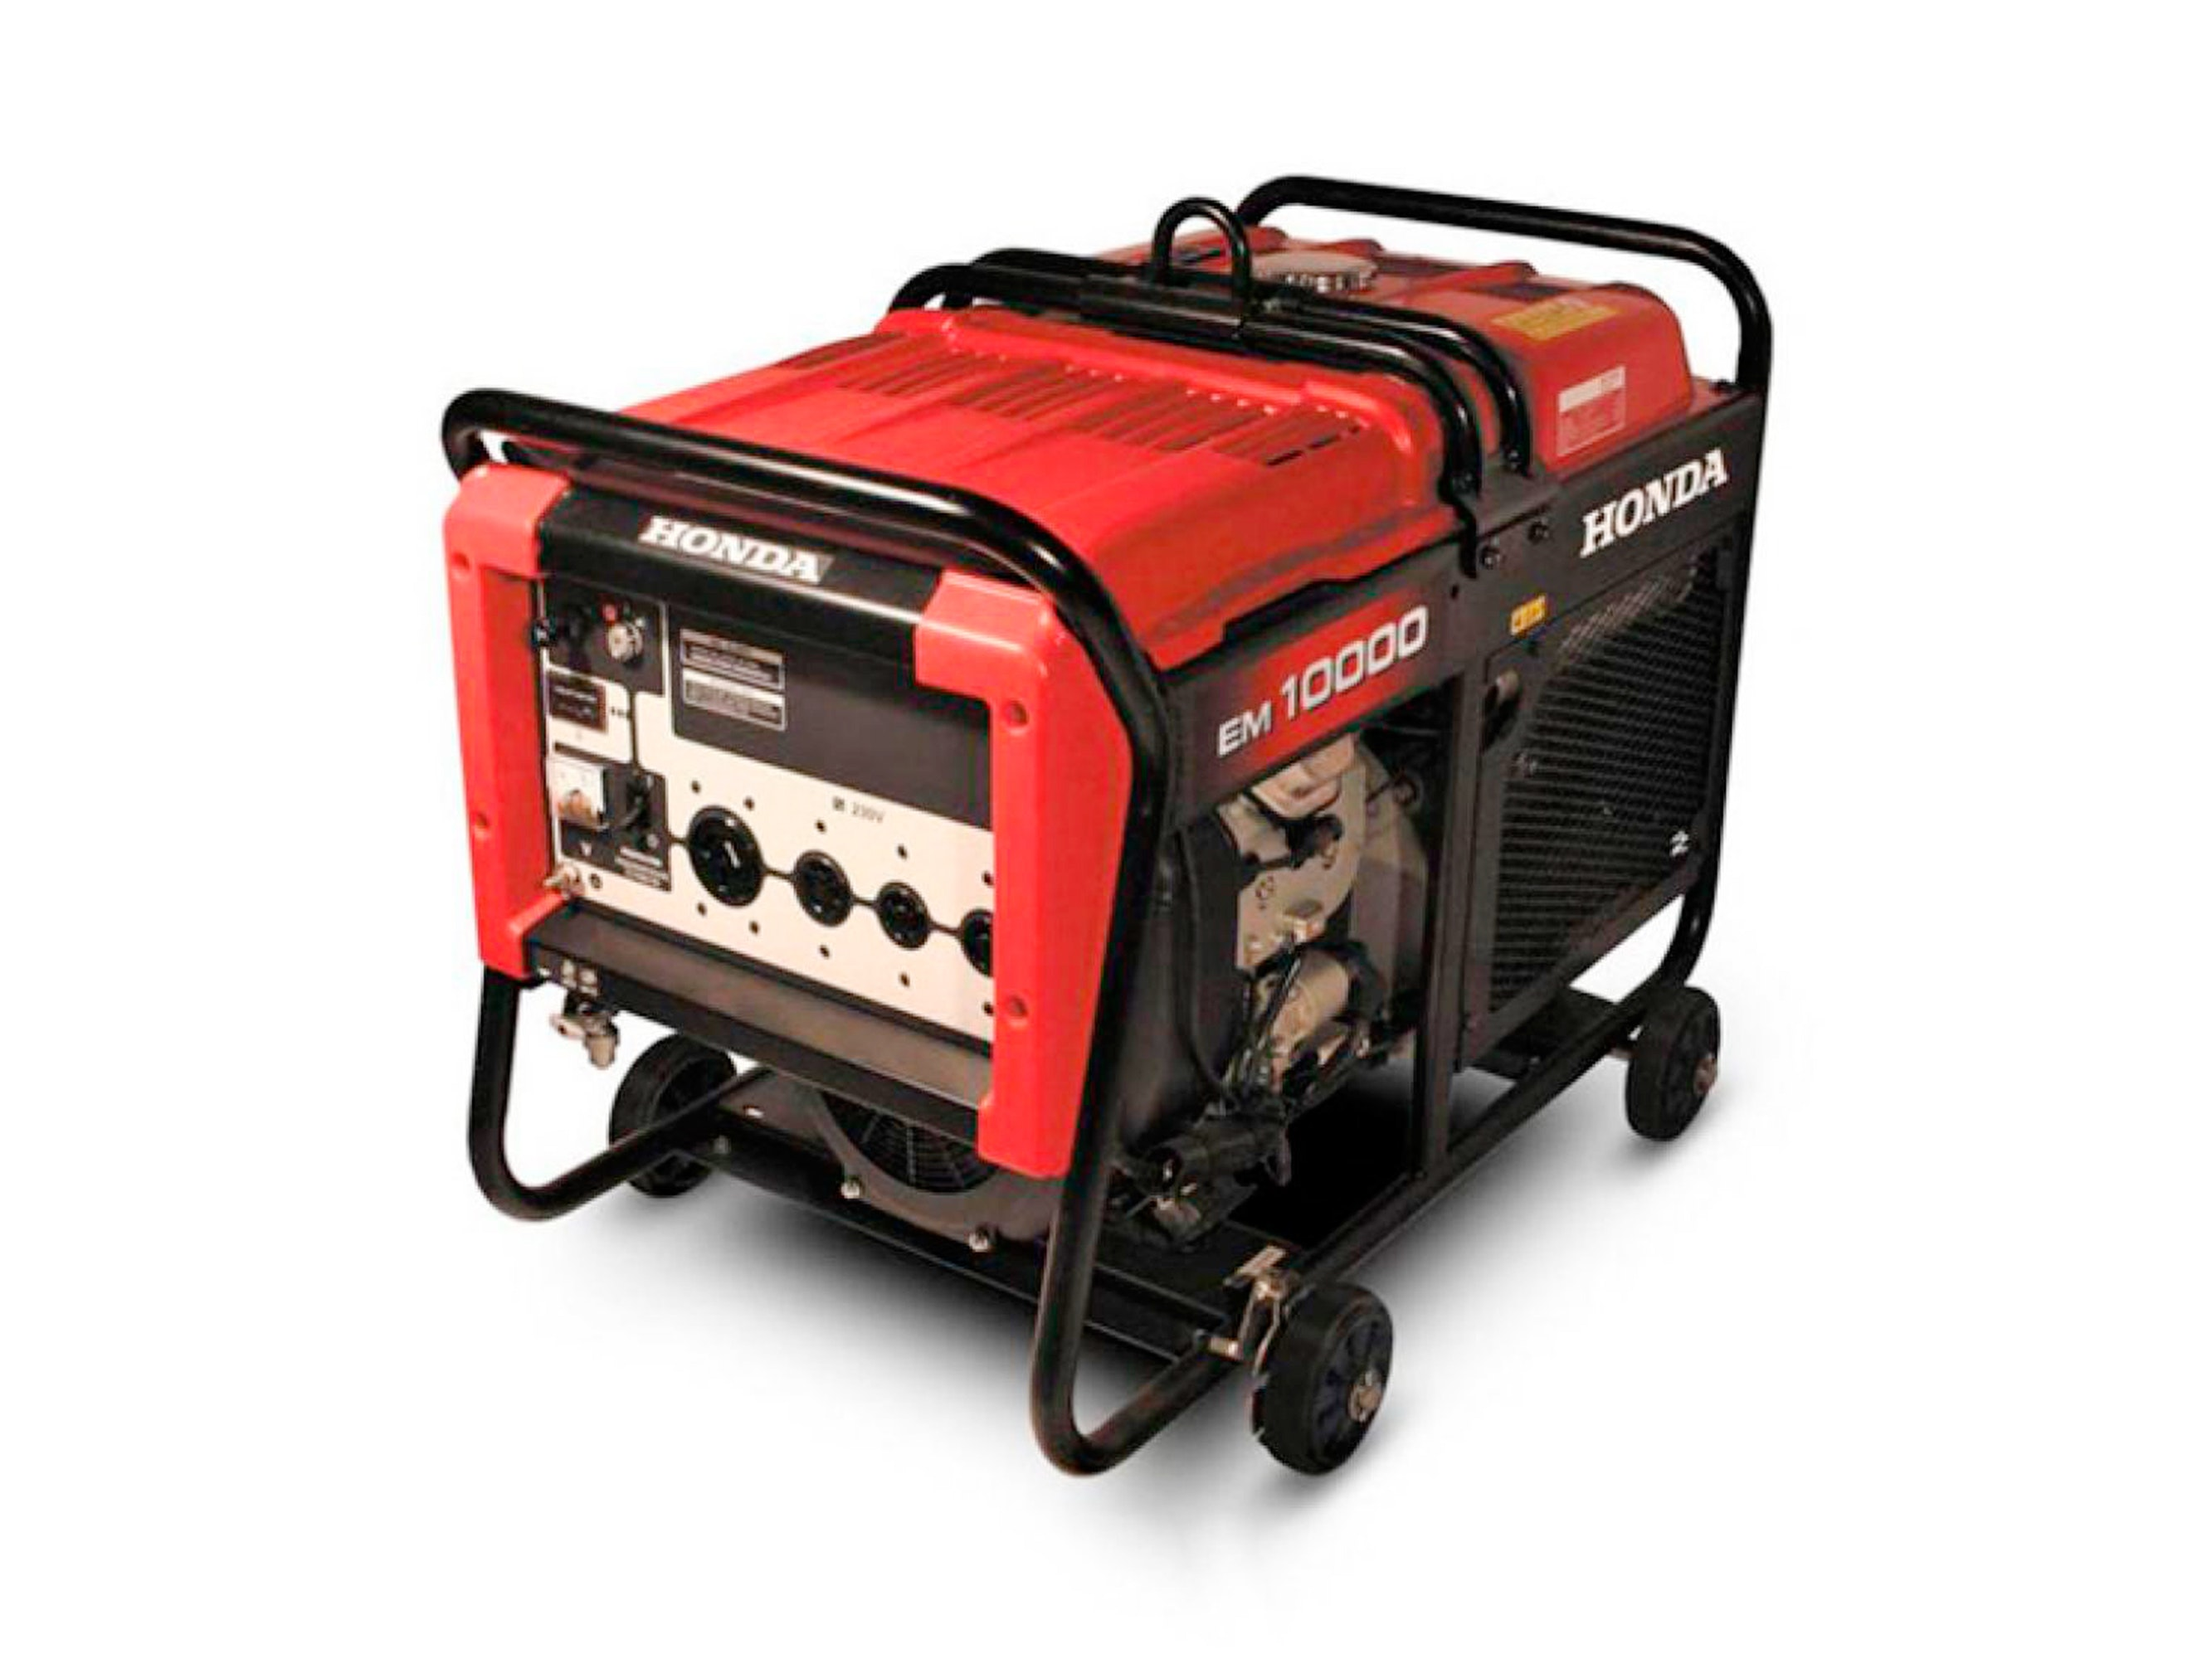 Honda EM10000 Generator 9000W with Electric Start